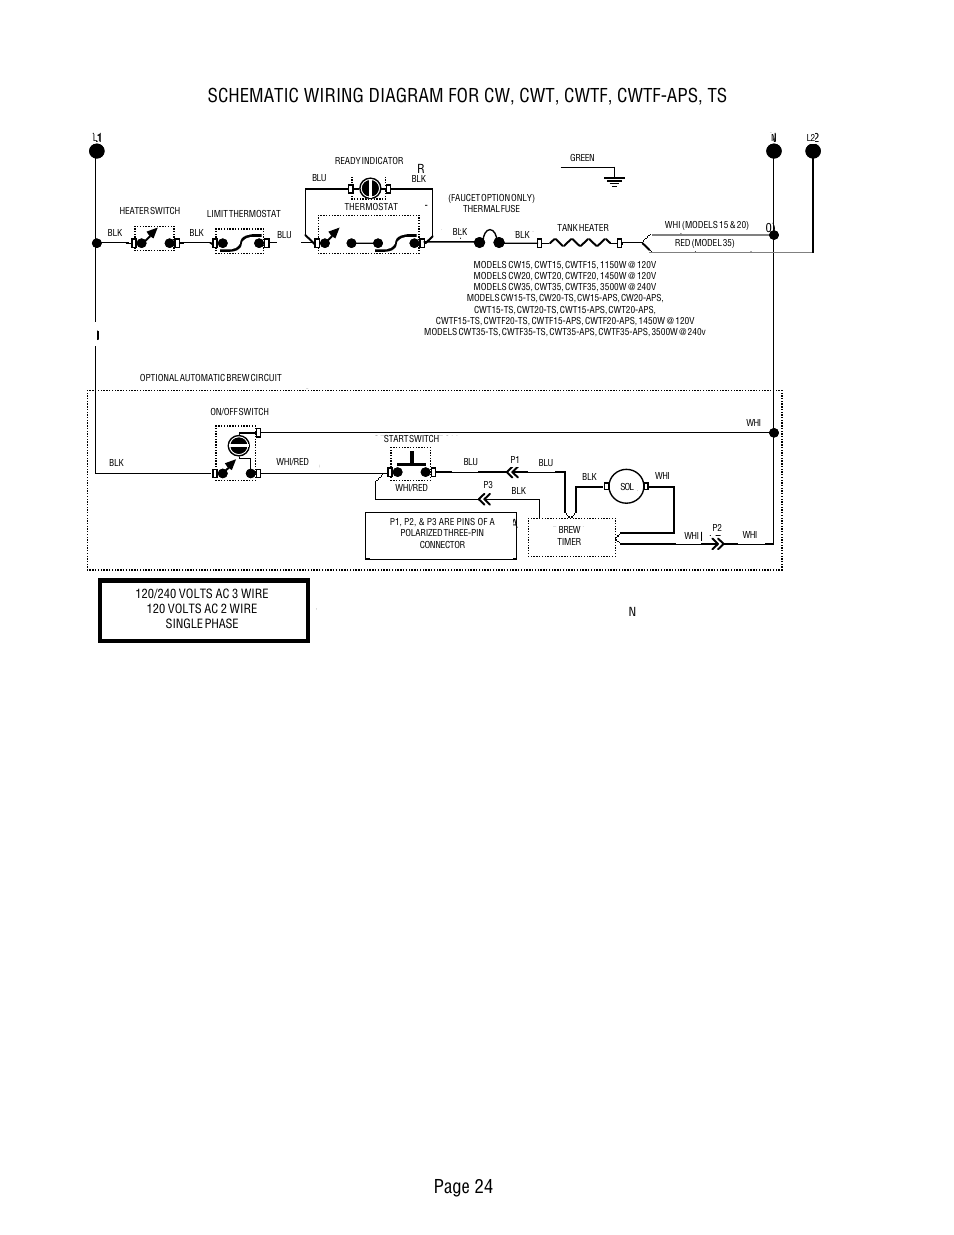 Bunn Cw Wiring Diagram Libraries 2wire Switch 120 Library